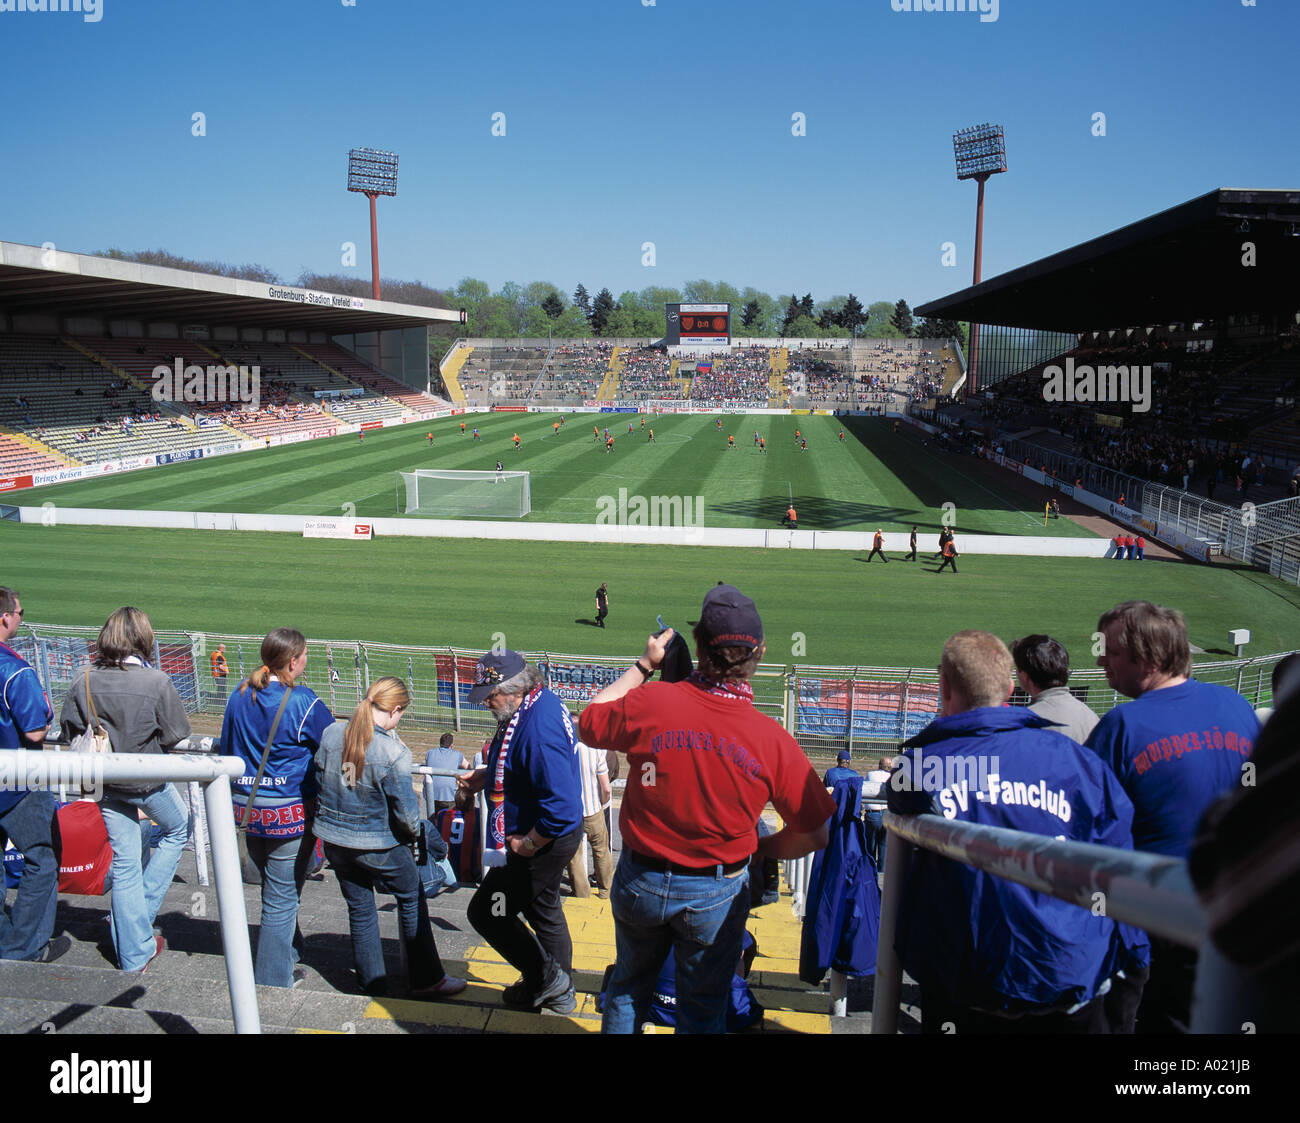 D-Krefeld, Lower Rhine, North Rhine-Westphalia, D-Krefeld-Uerdingen, sports, football, Regionalliga North, 2004/2005, KFC Uerdingen 05 versus SV Wuppertal 1:1, Grotenburg Stadium, total view, panorama, crowd of spectators, Wuppertal fans, not many spectat - Stock Image